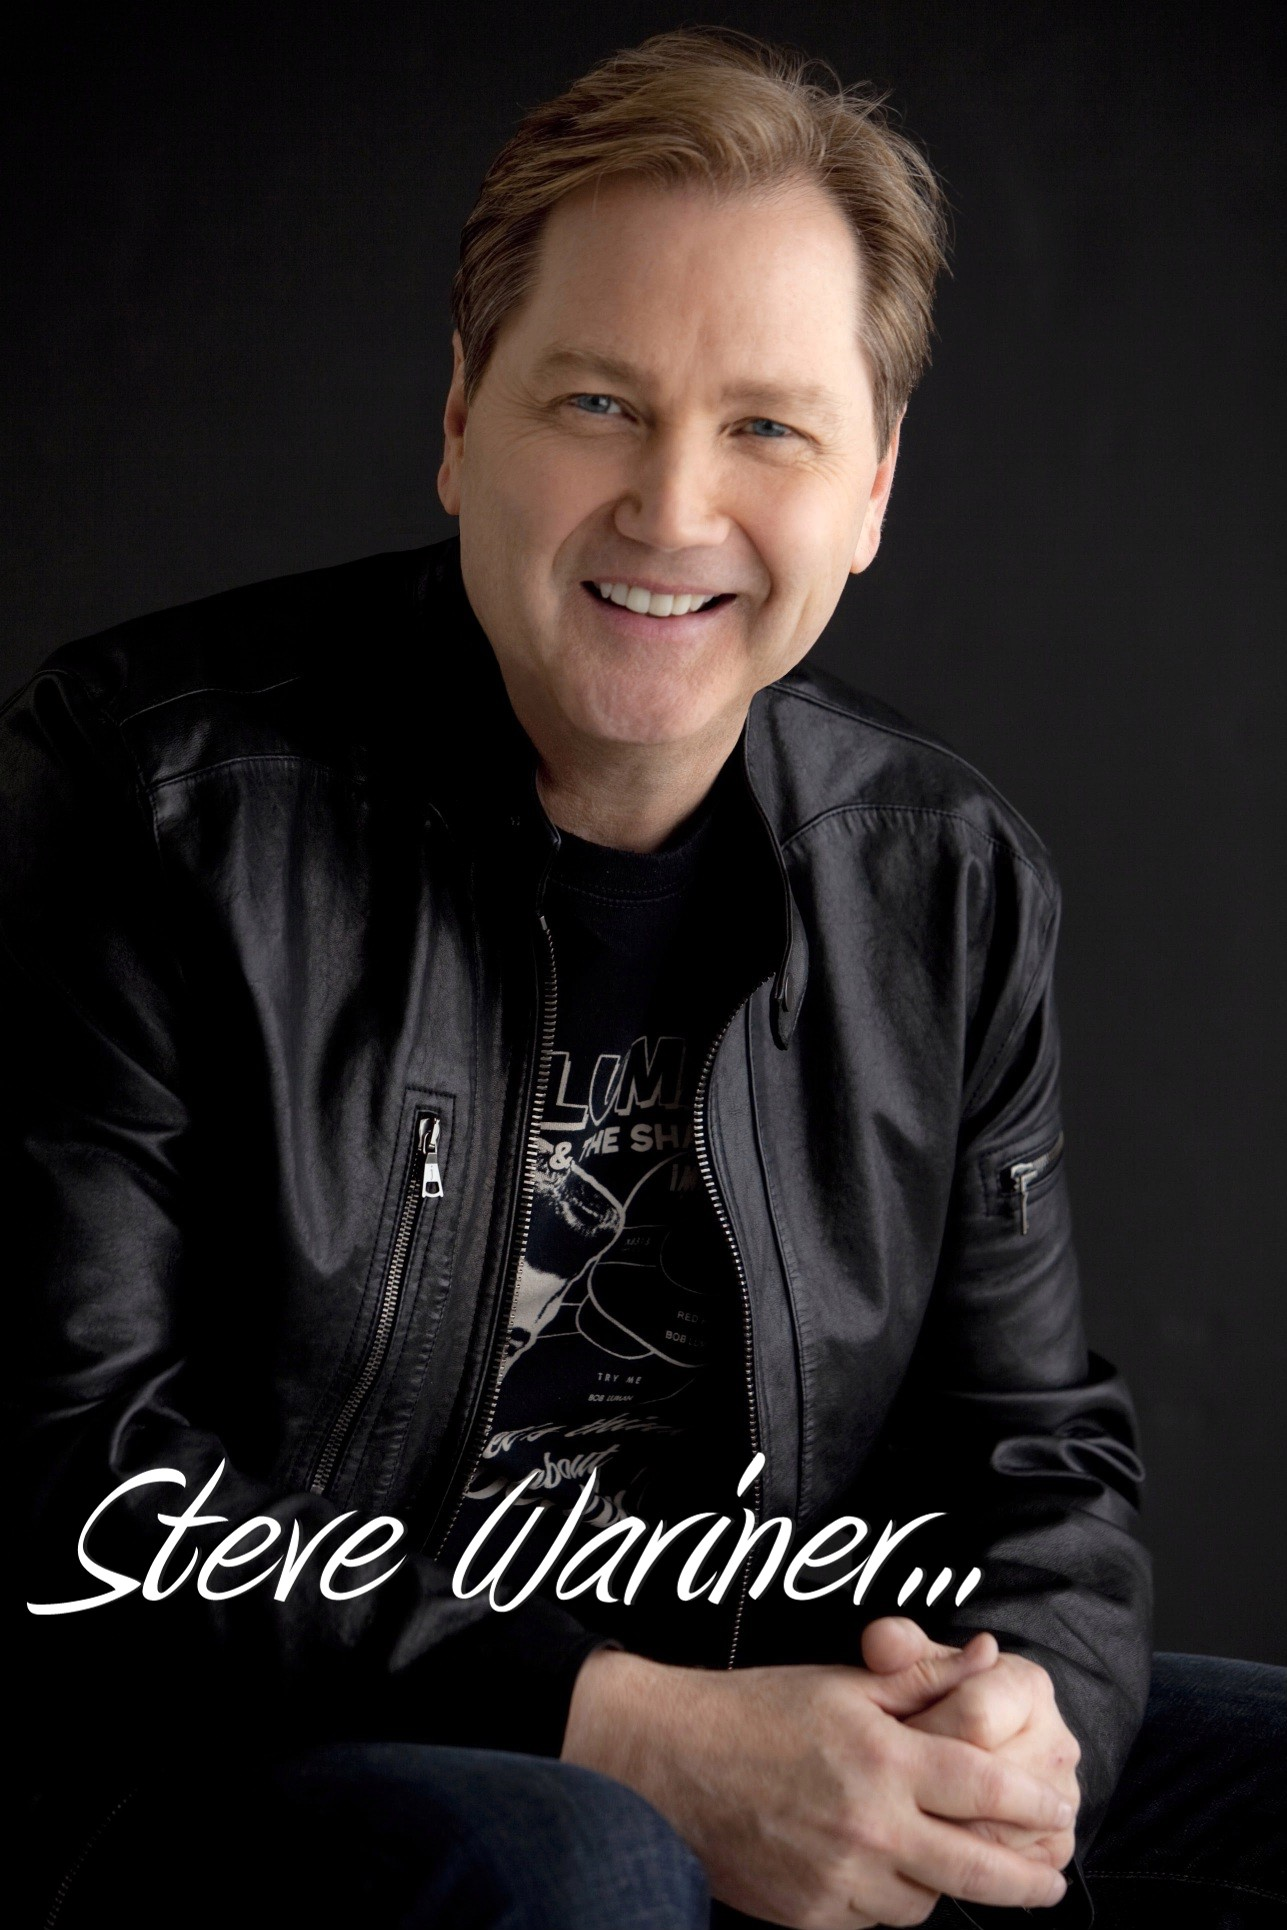 Strictly Country Magazine The Unappreciated Steve Wariner